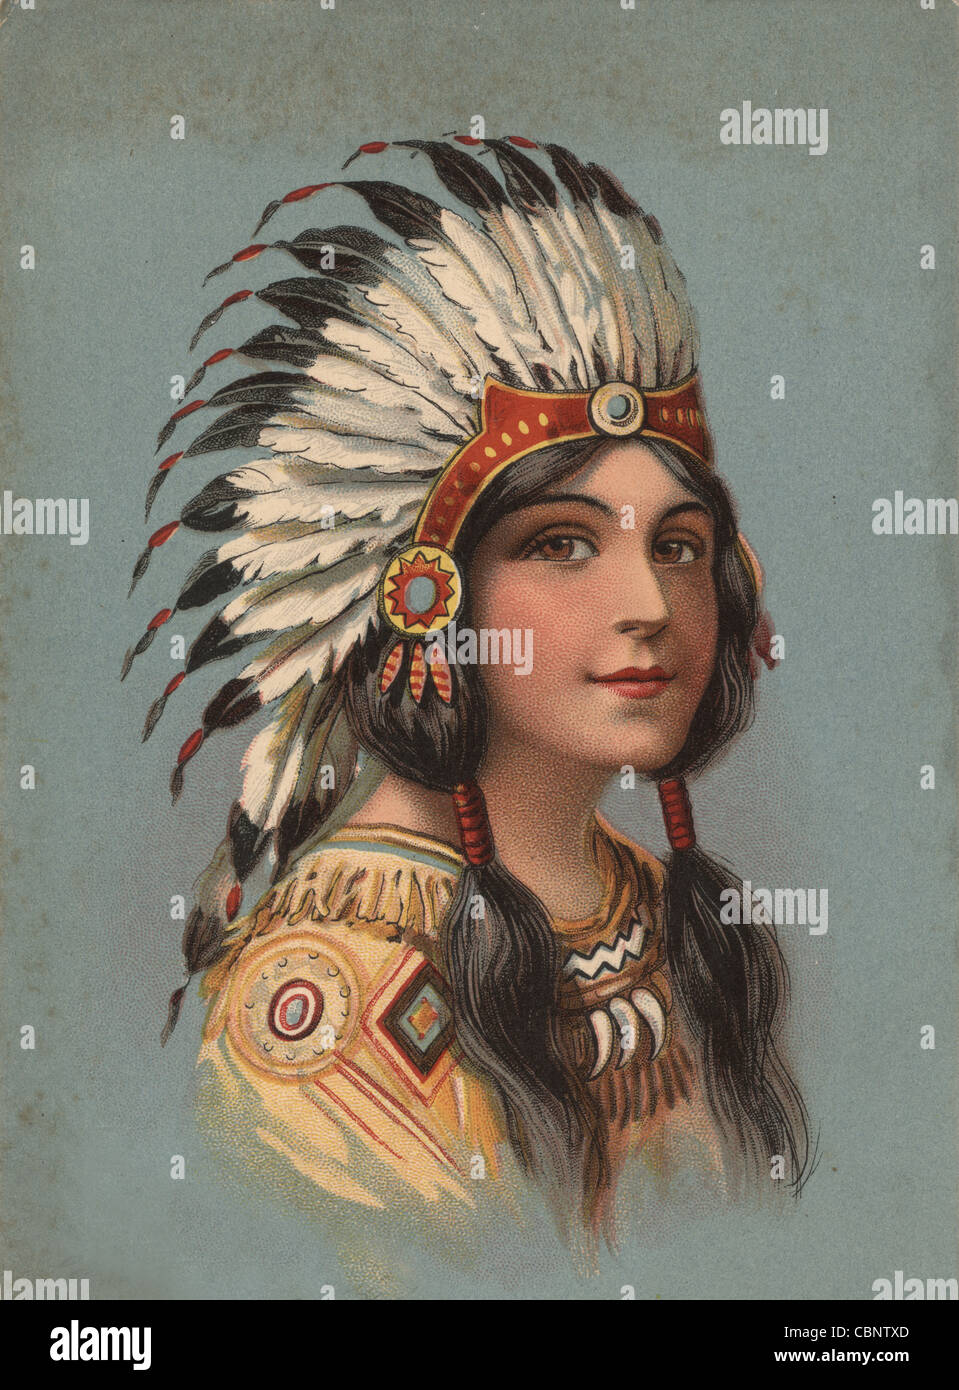 Native American Indian Beauty Photo Stock